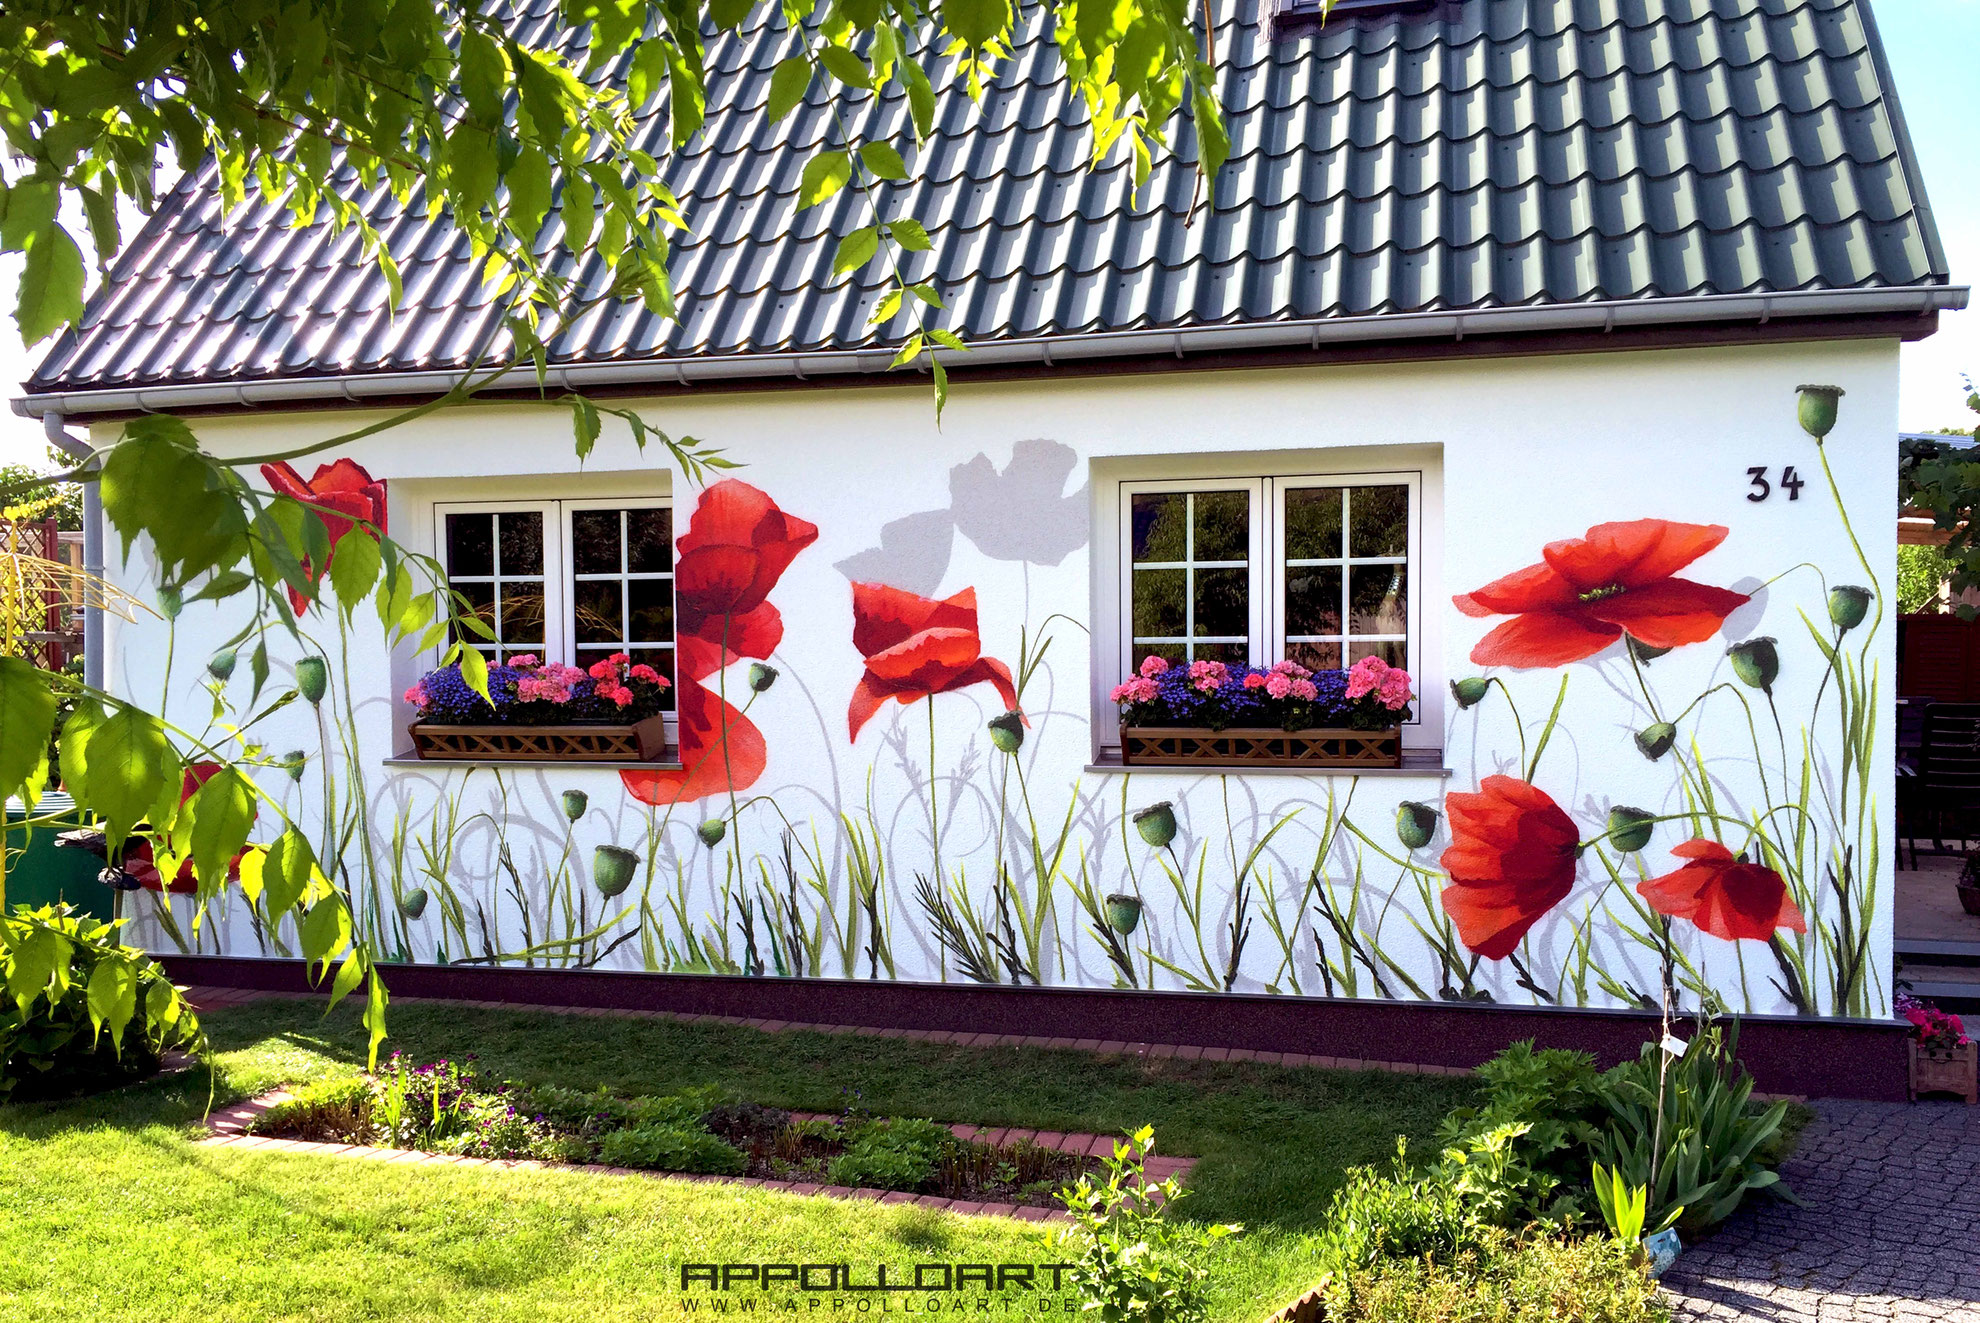 hauswand bungalow gestaltung mit mohnblumen graffiti k nstler und auftrag. Black Bedroom Furniture Sets. Home Design Ideas